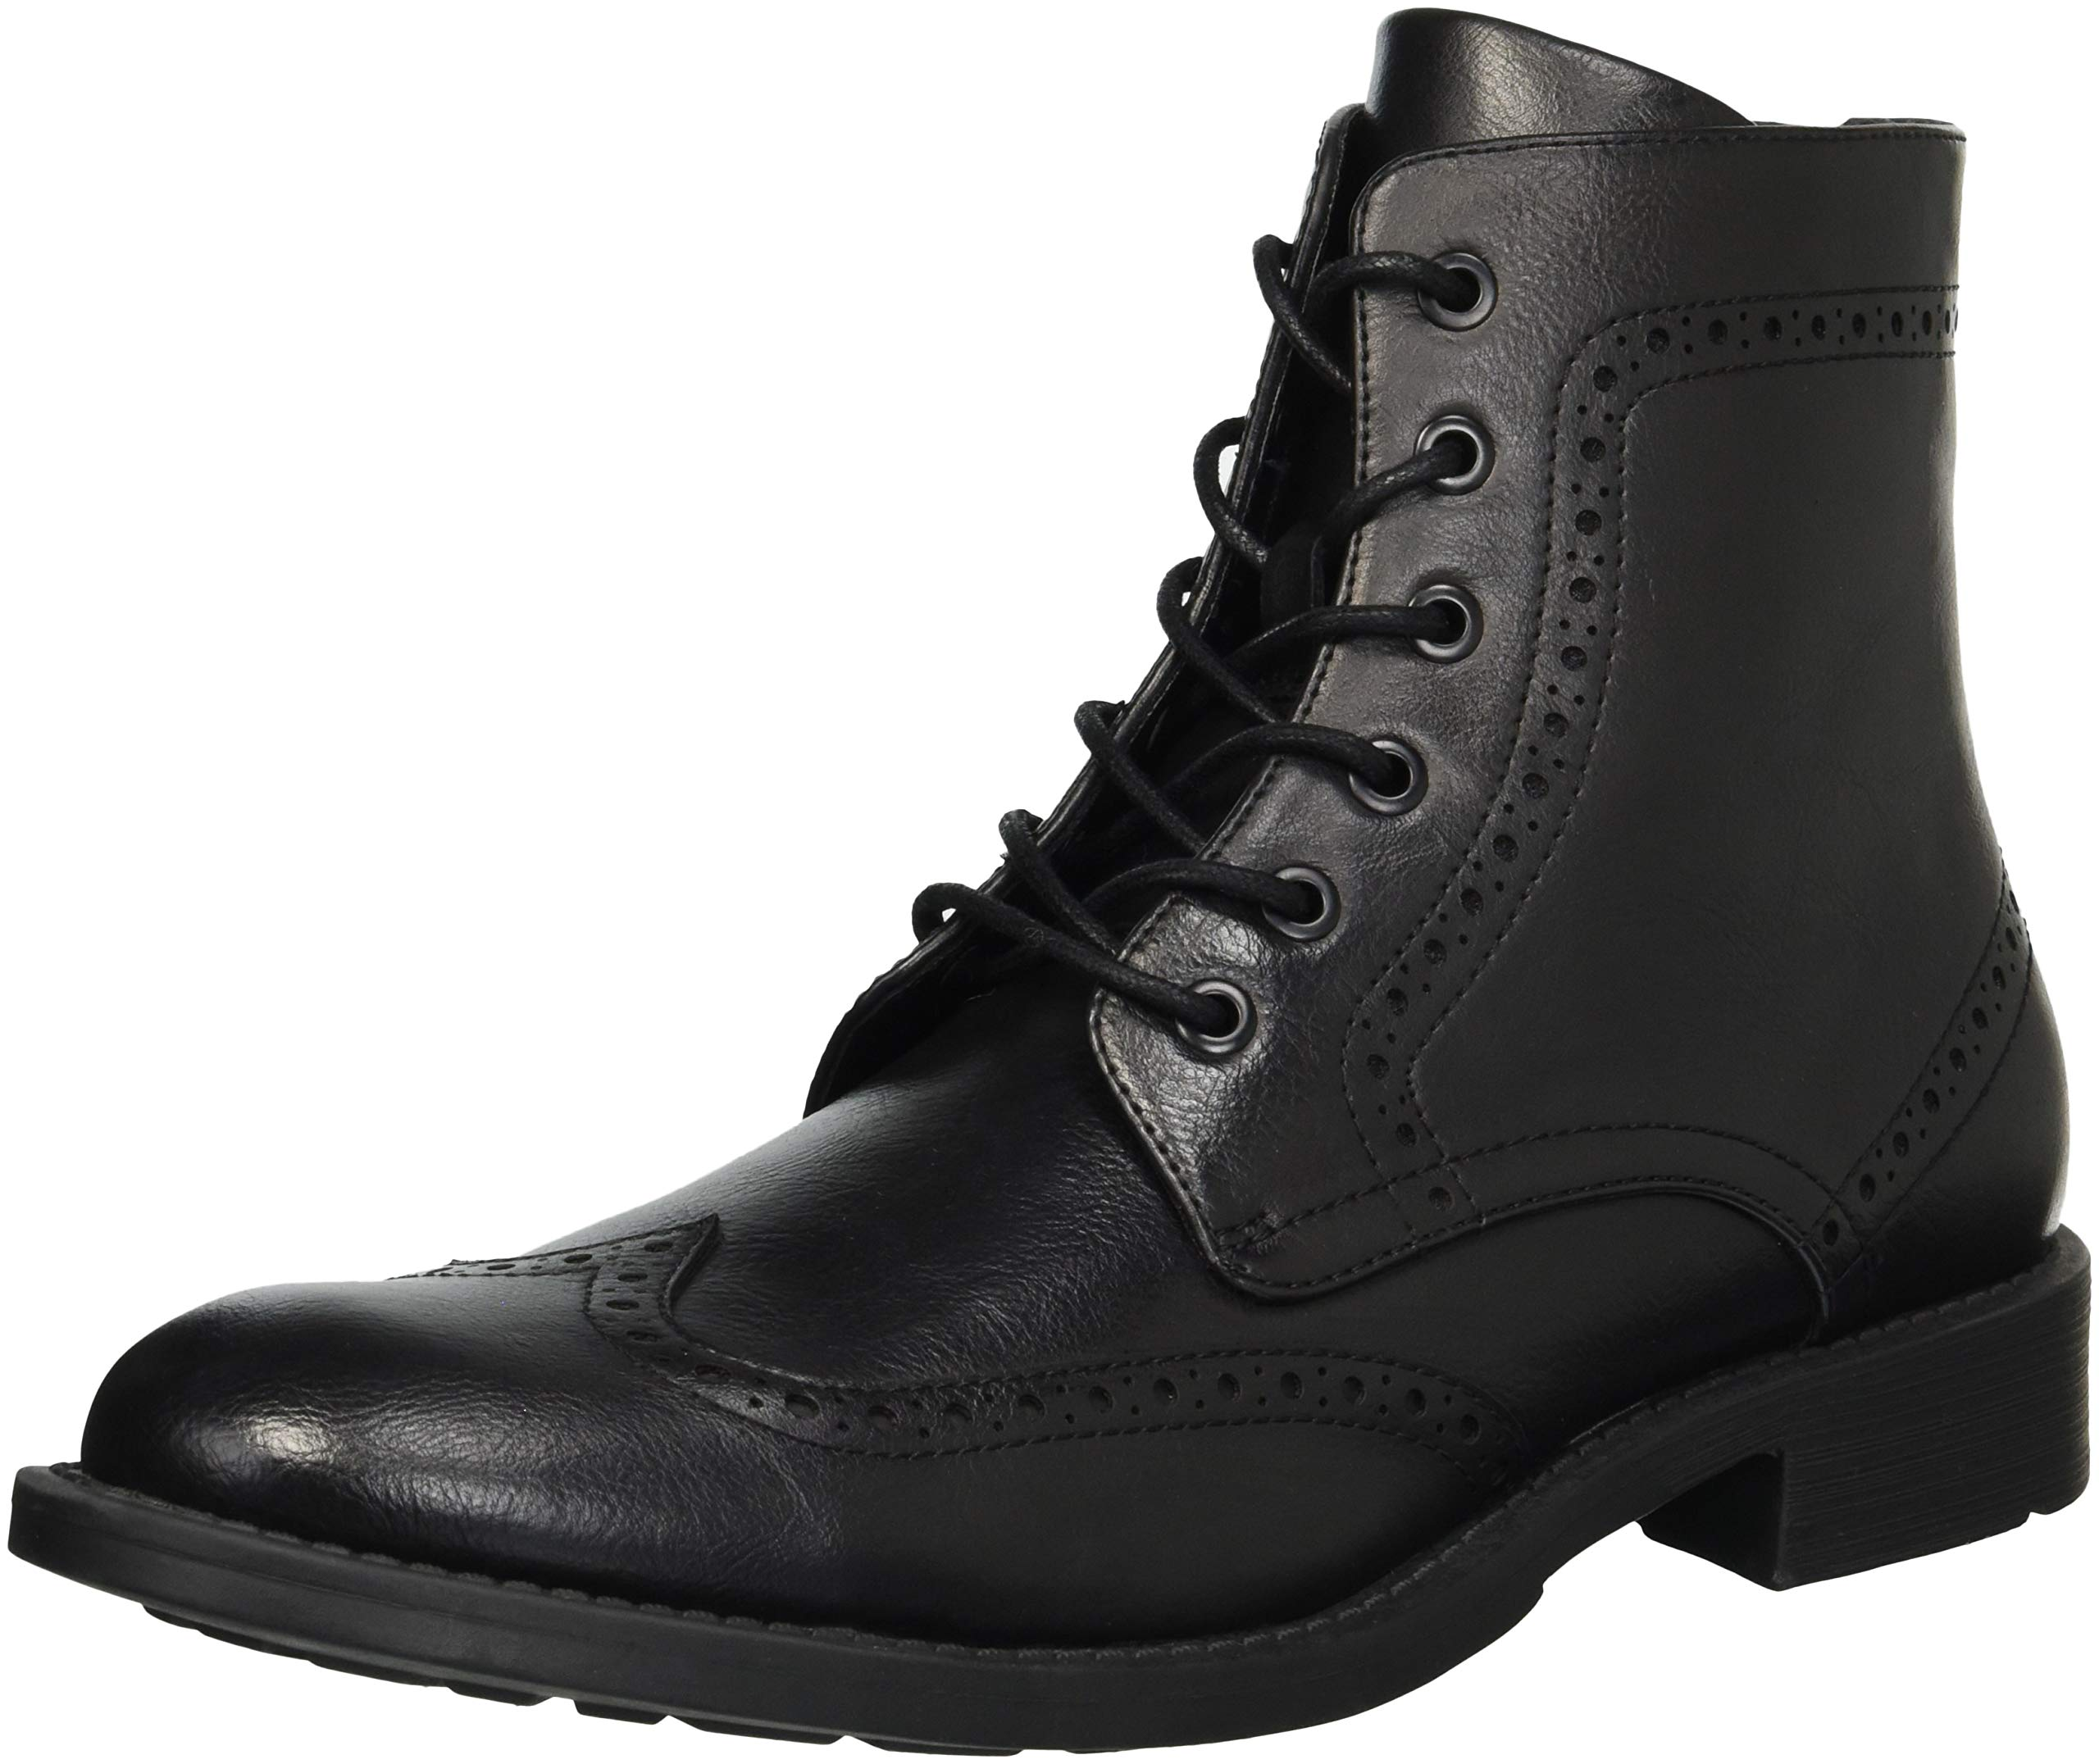 Unlisted by Kenneth Cole Men's Blind-Sided Oxford Boot, Black Burnished, 12 M US